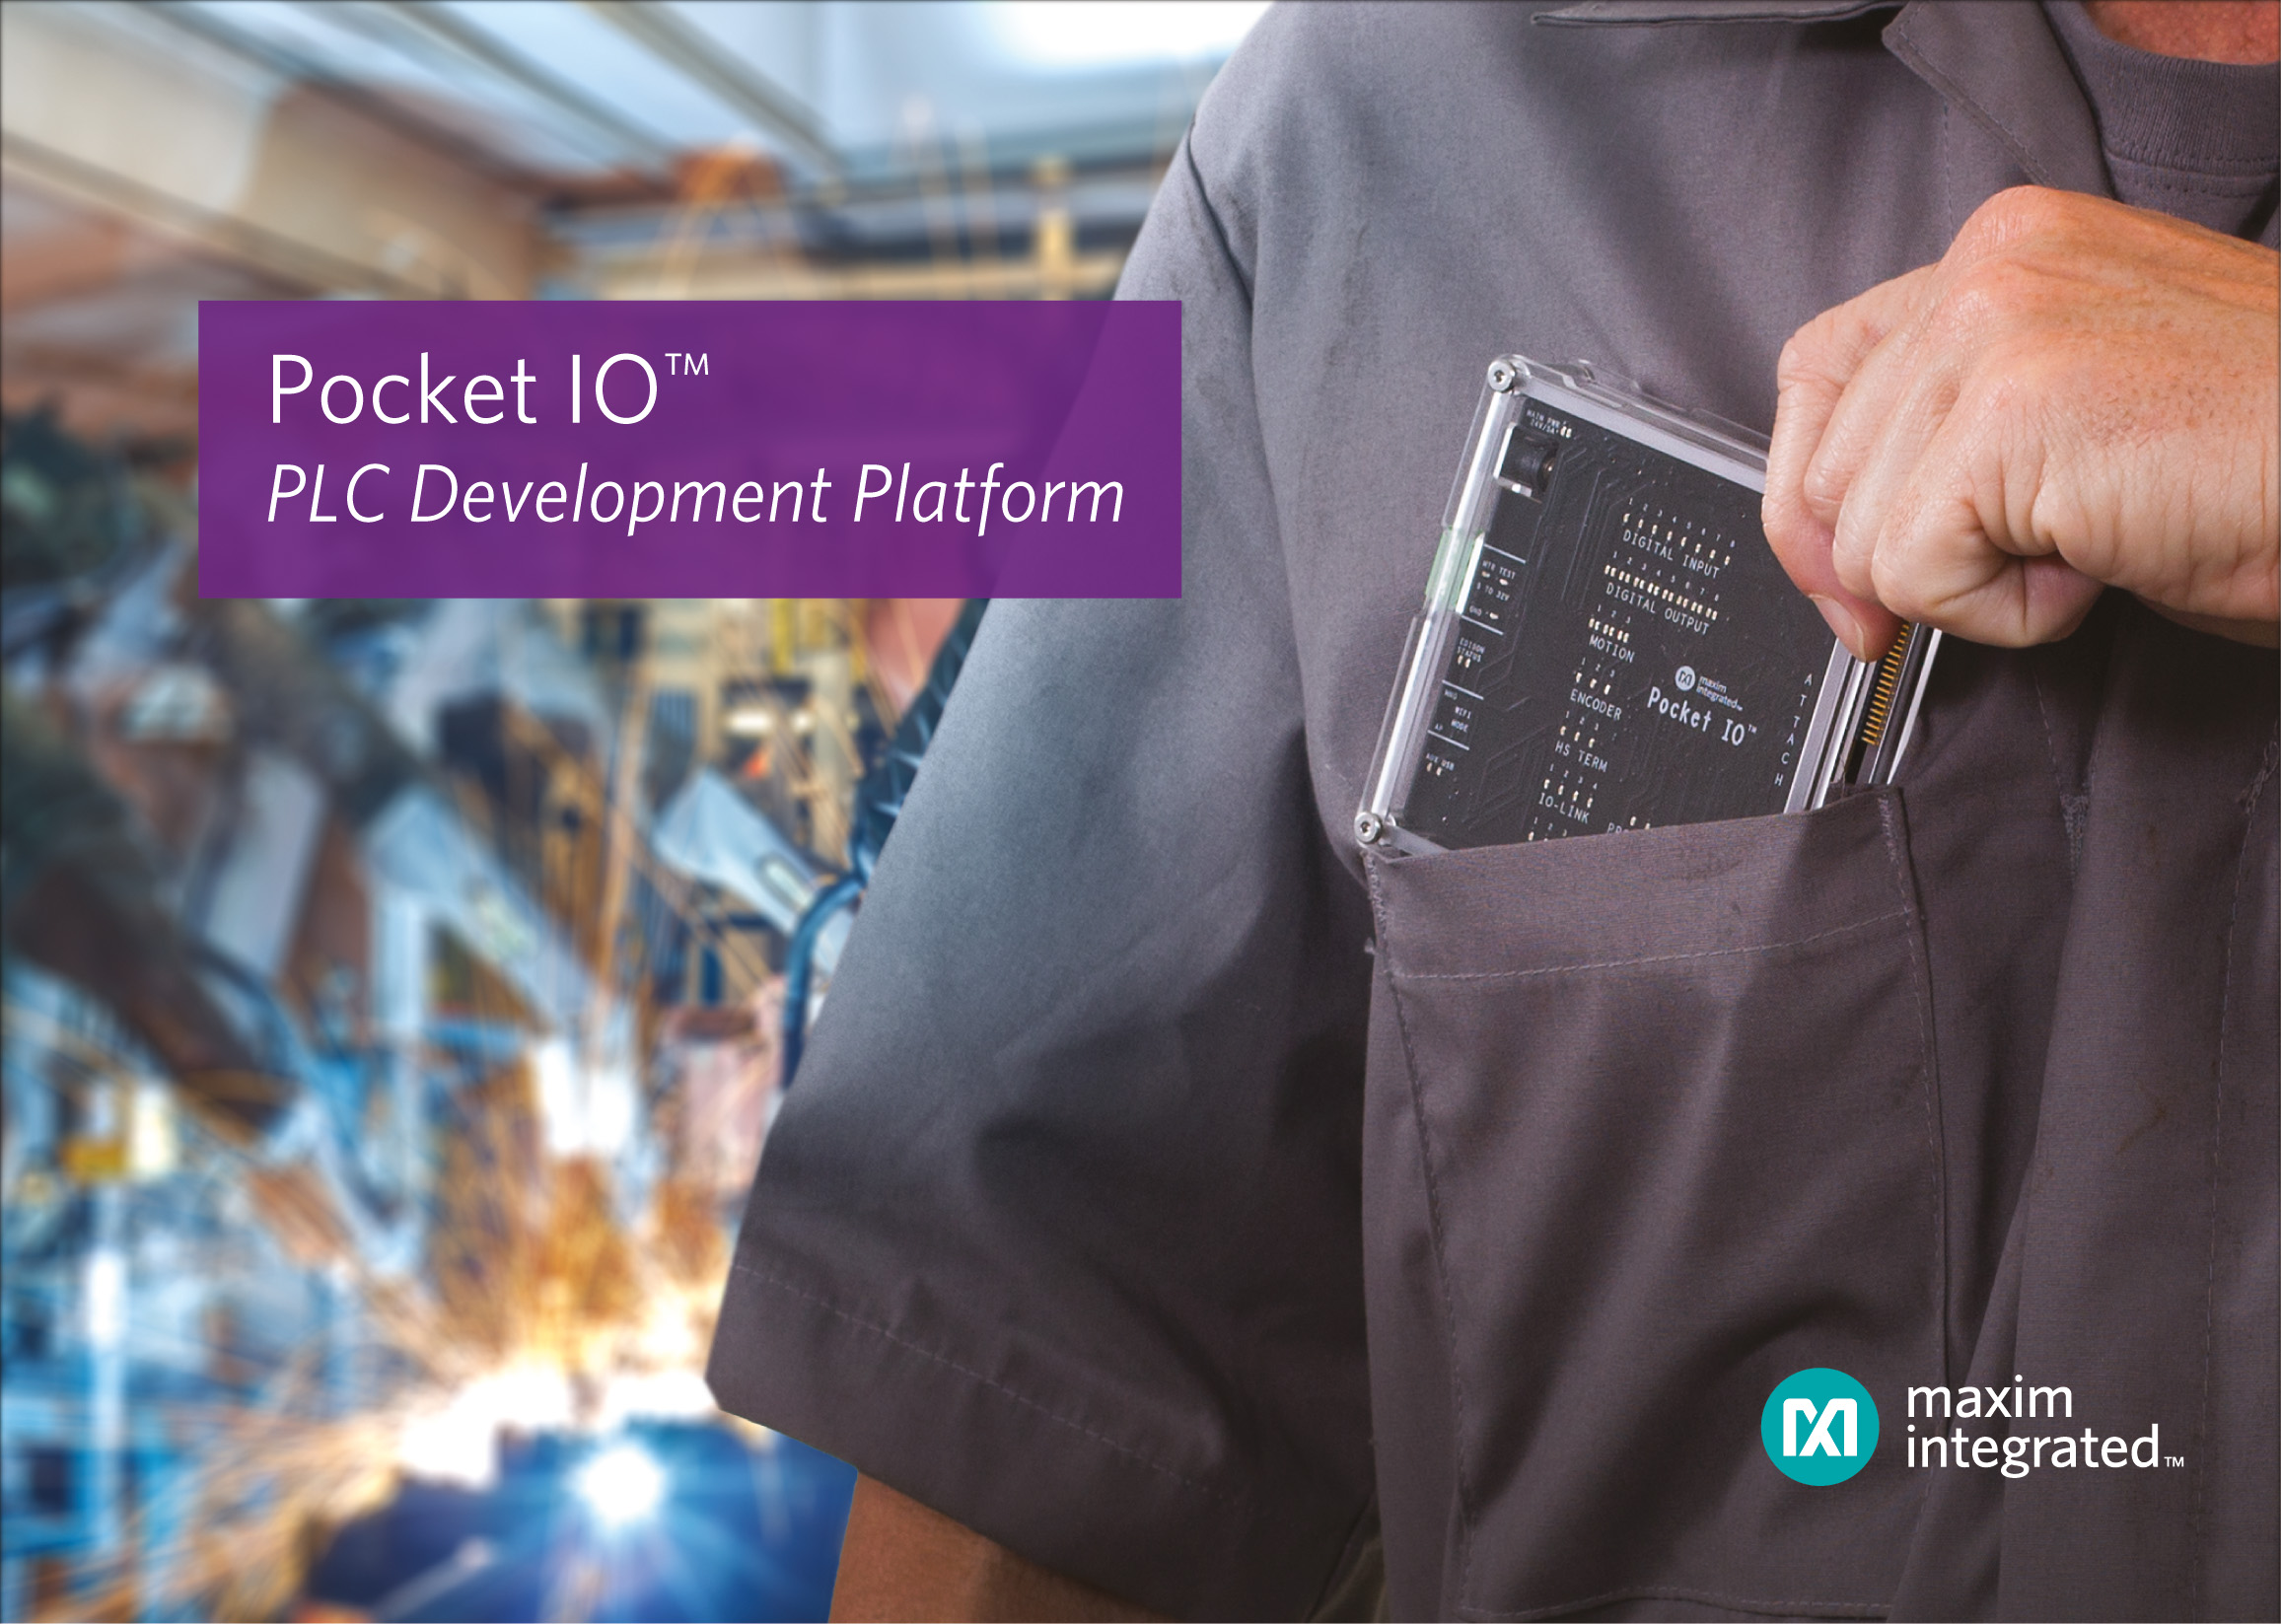 Industry 4.0 Applications with IO PLC Development Platform